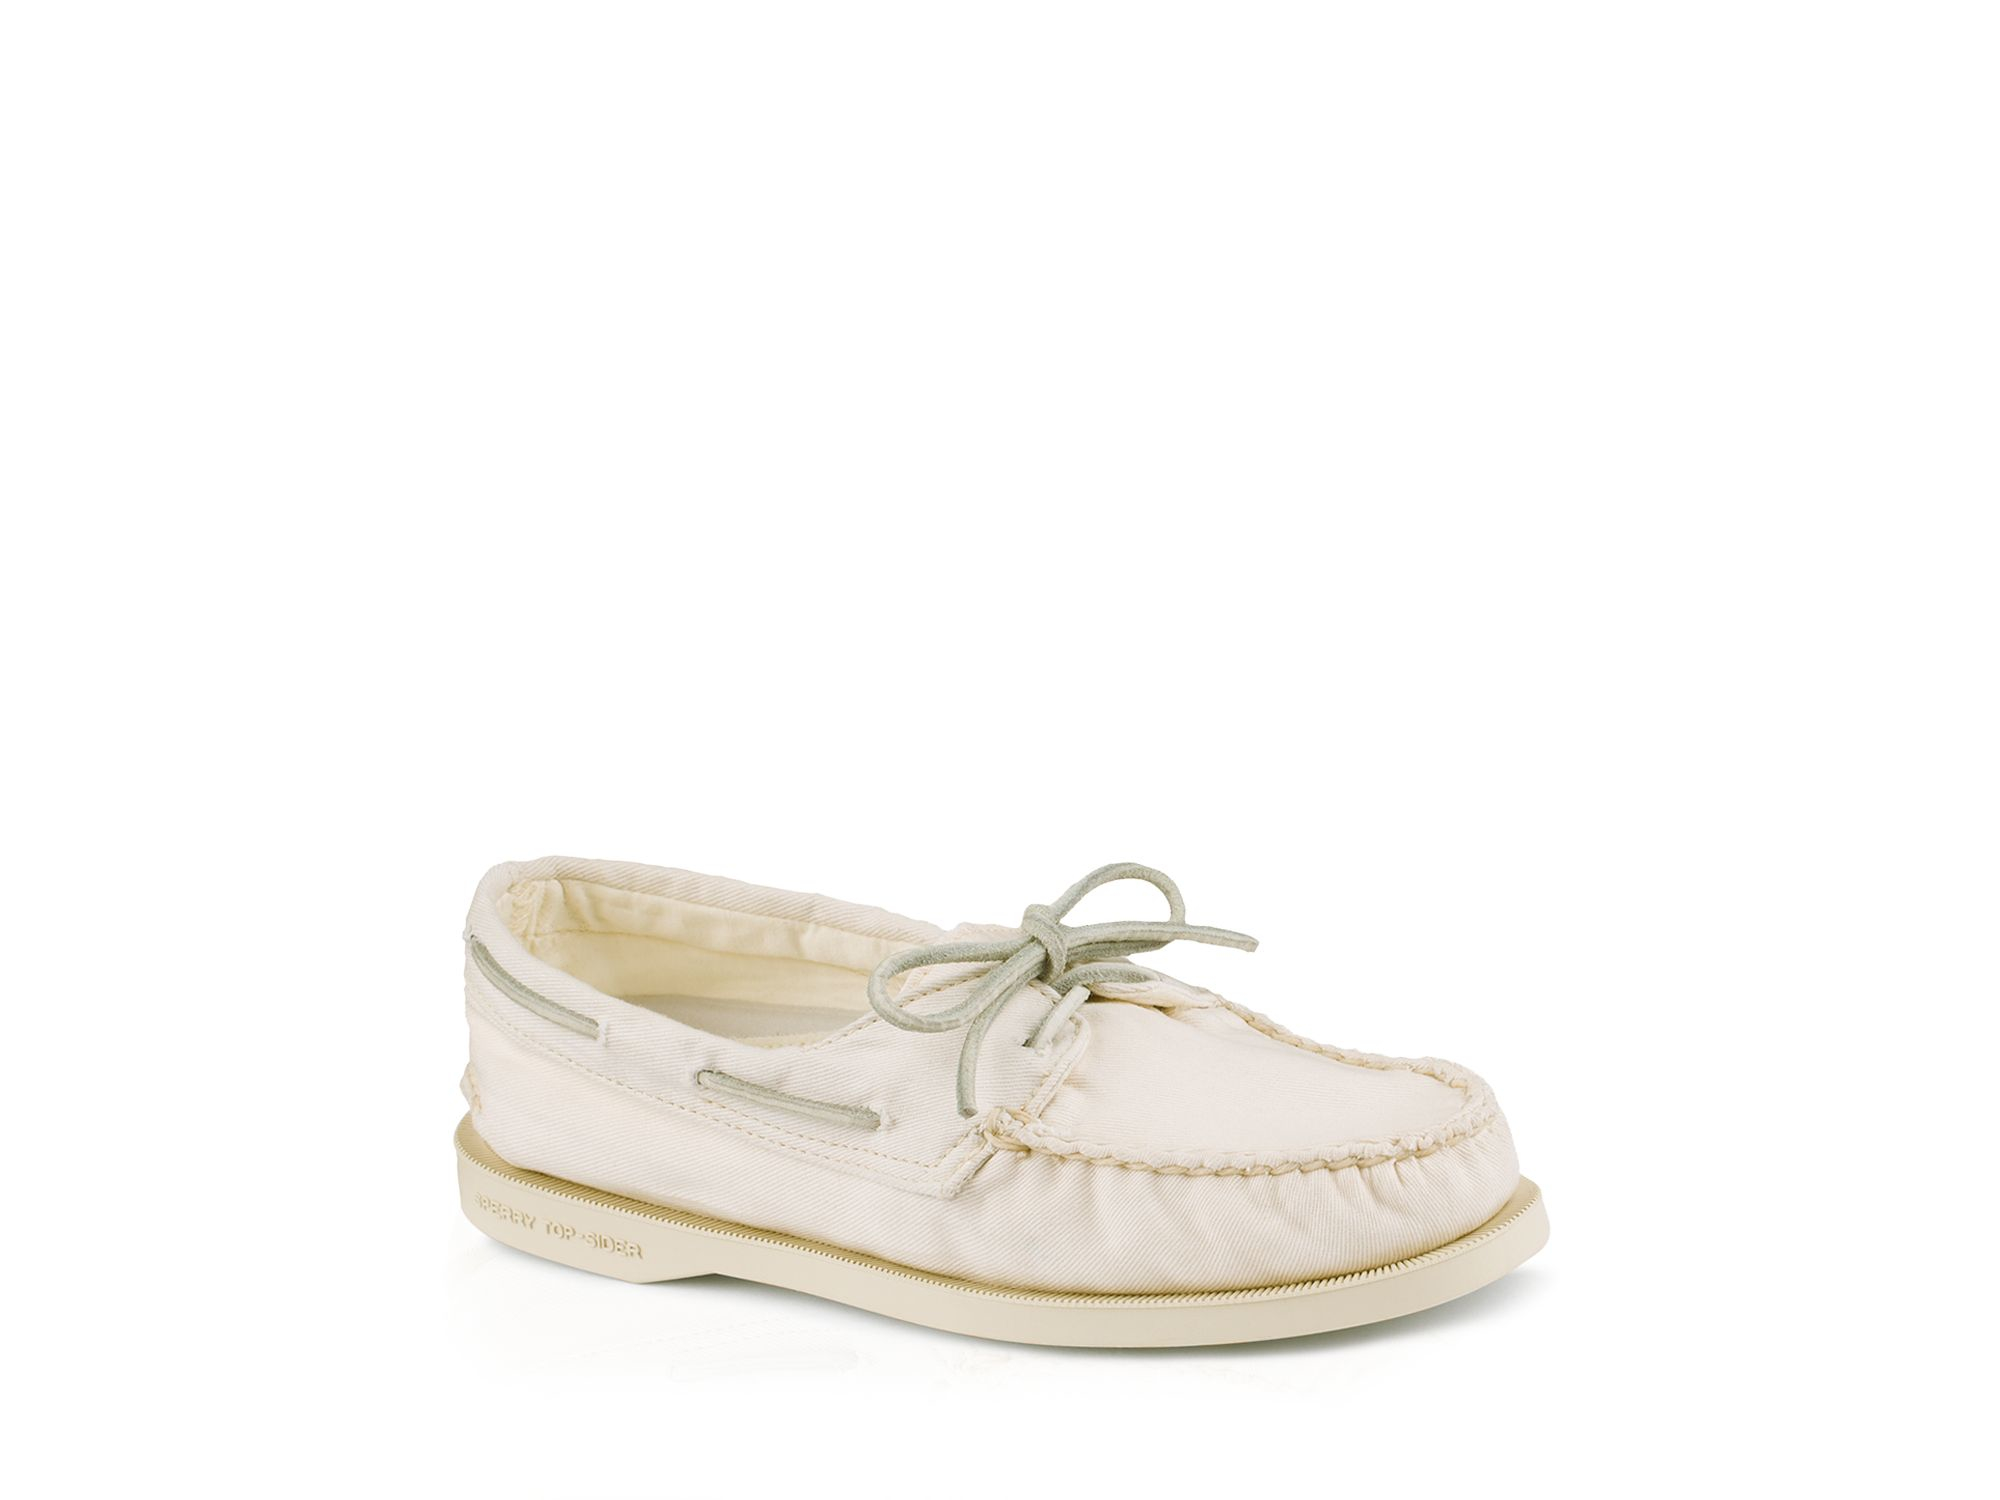 Sperry White Washed Canvas Sayel Boat Shoes